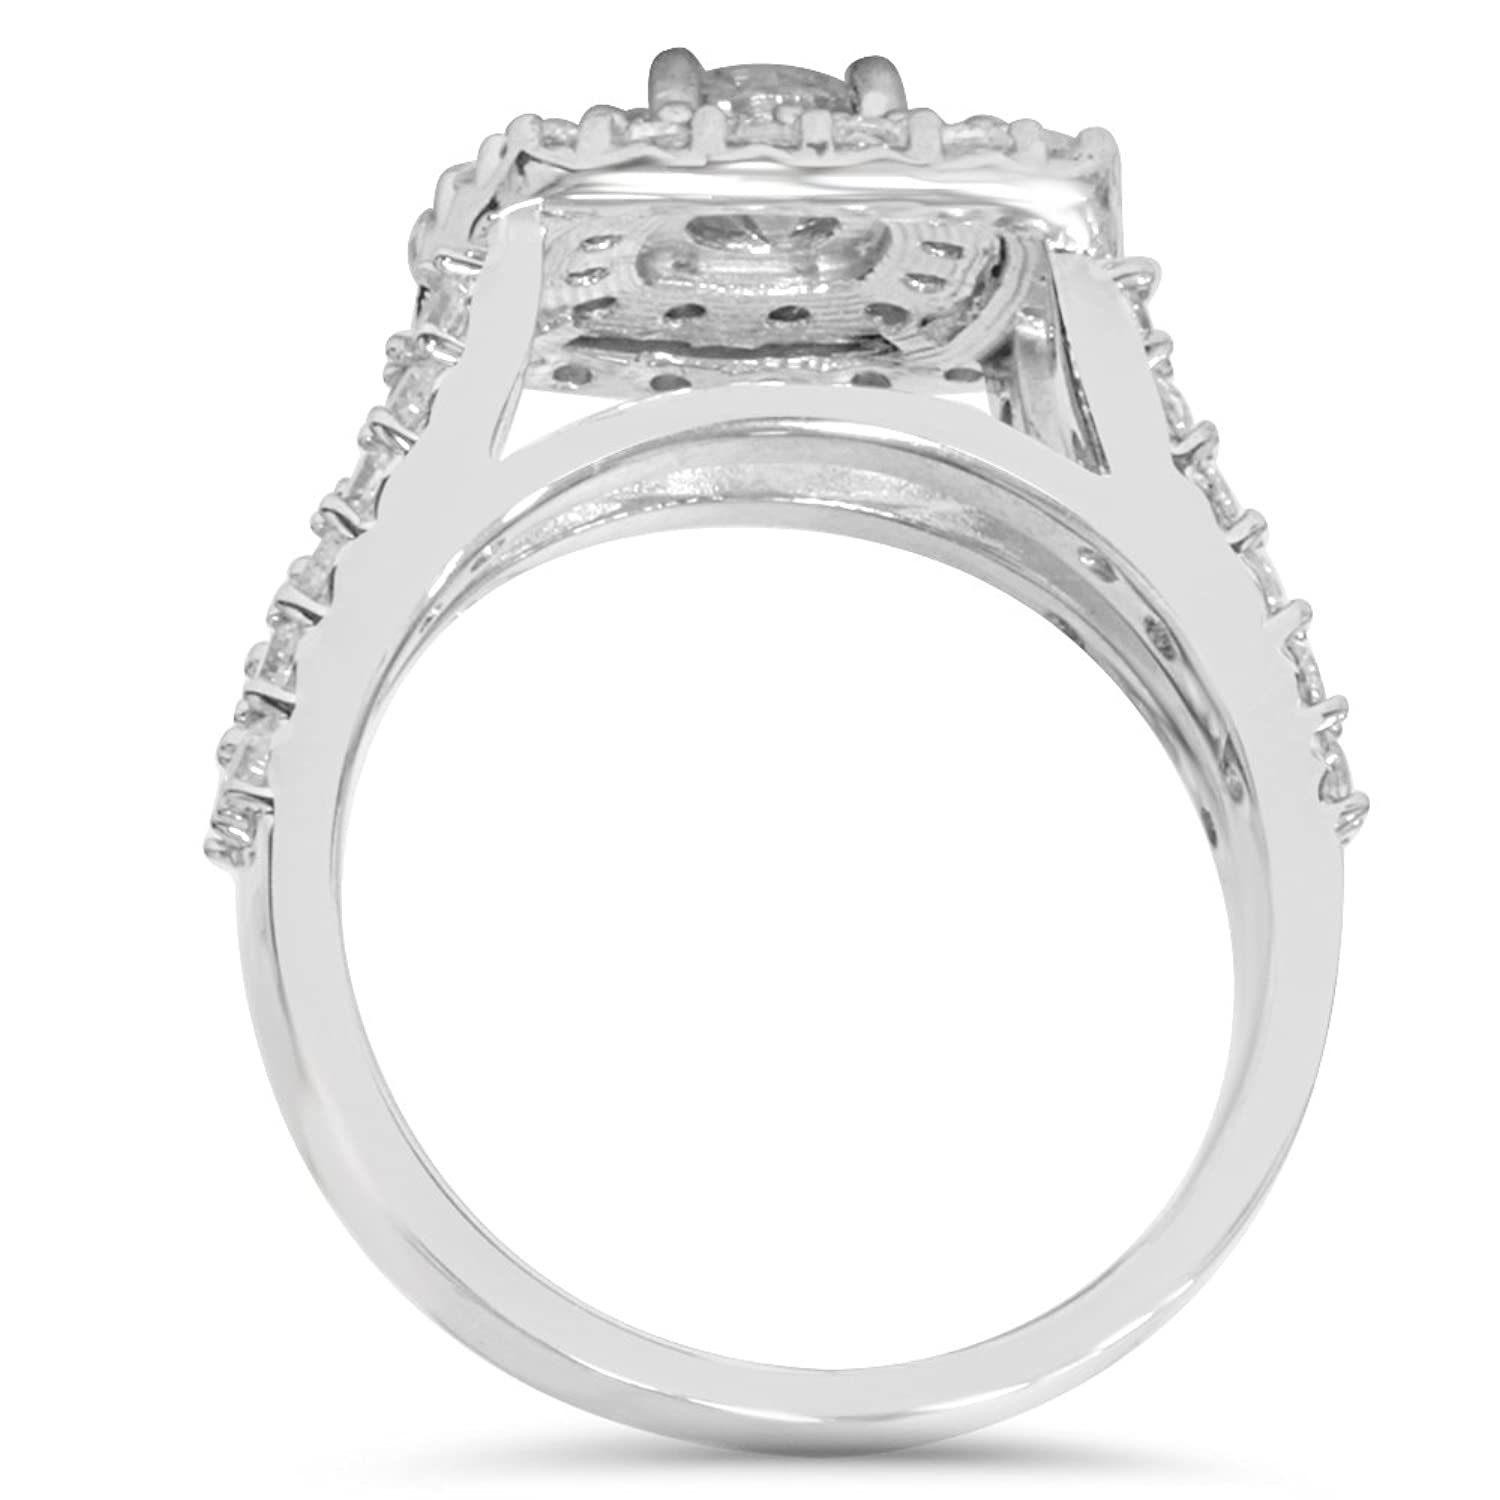 2 Carat Diamond Cushion Halo Engagement Wedding Ring Set White